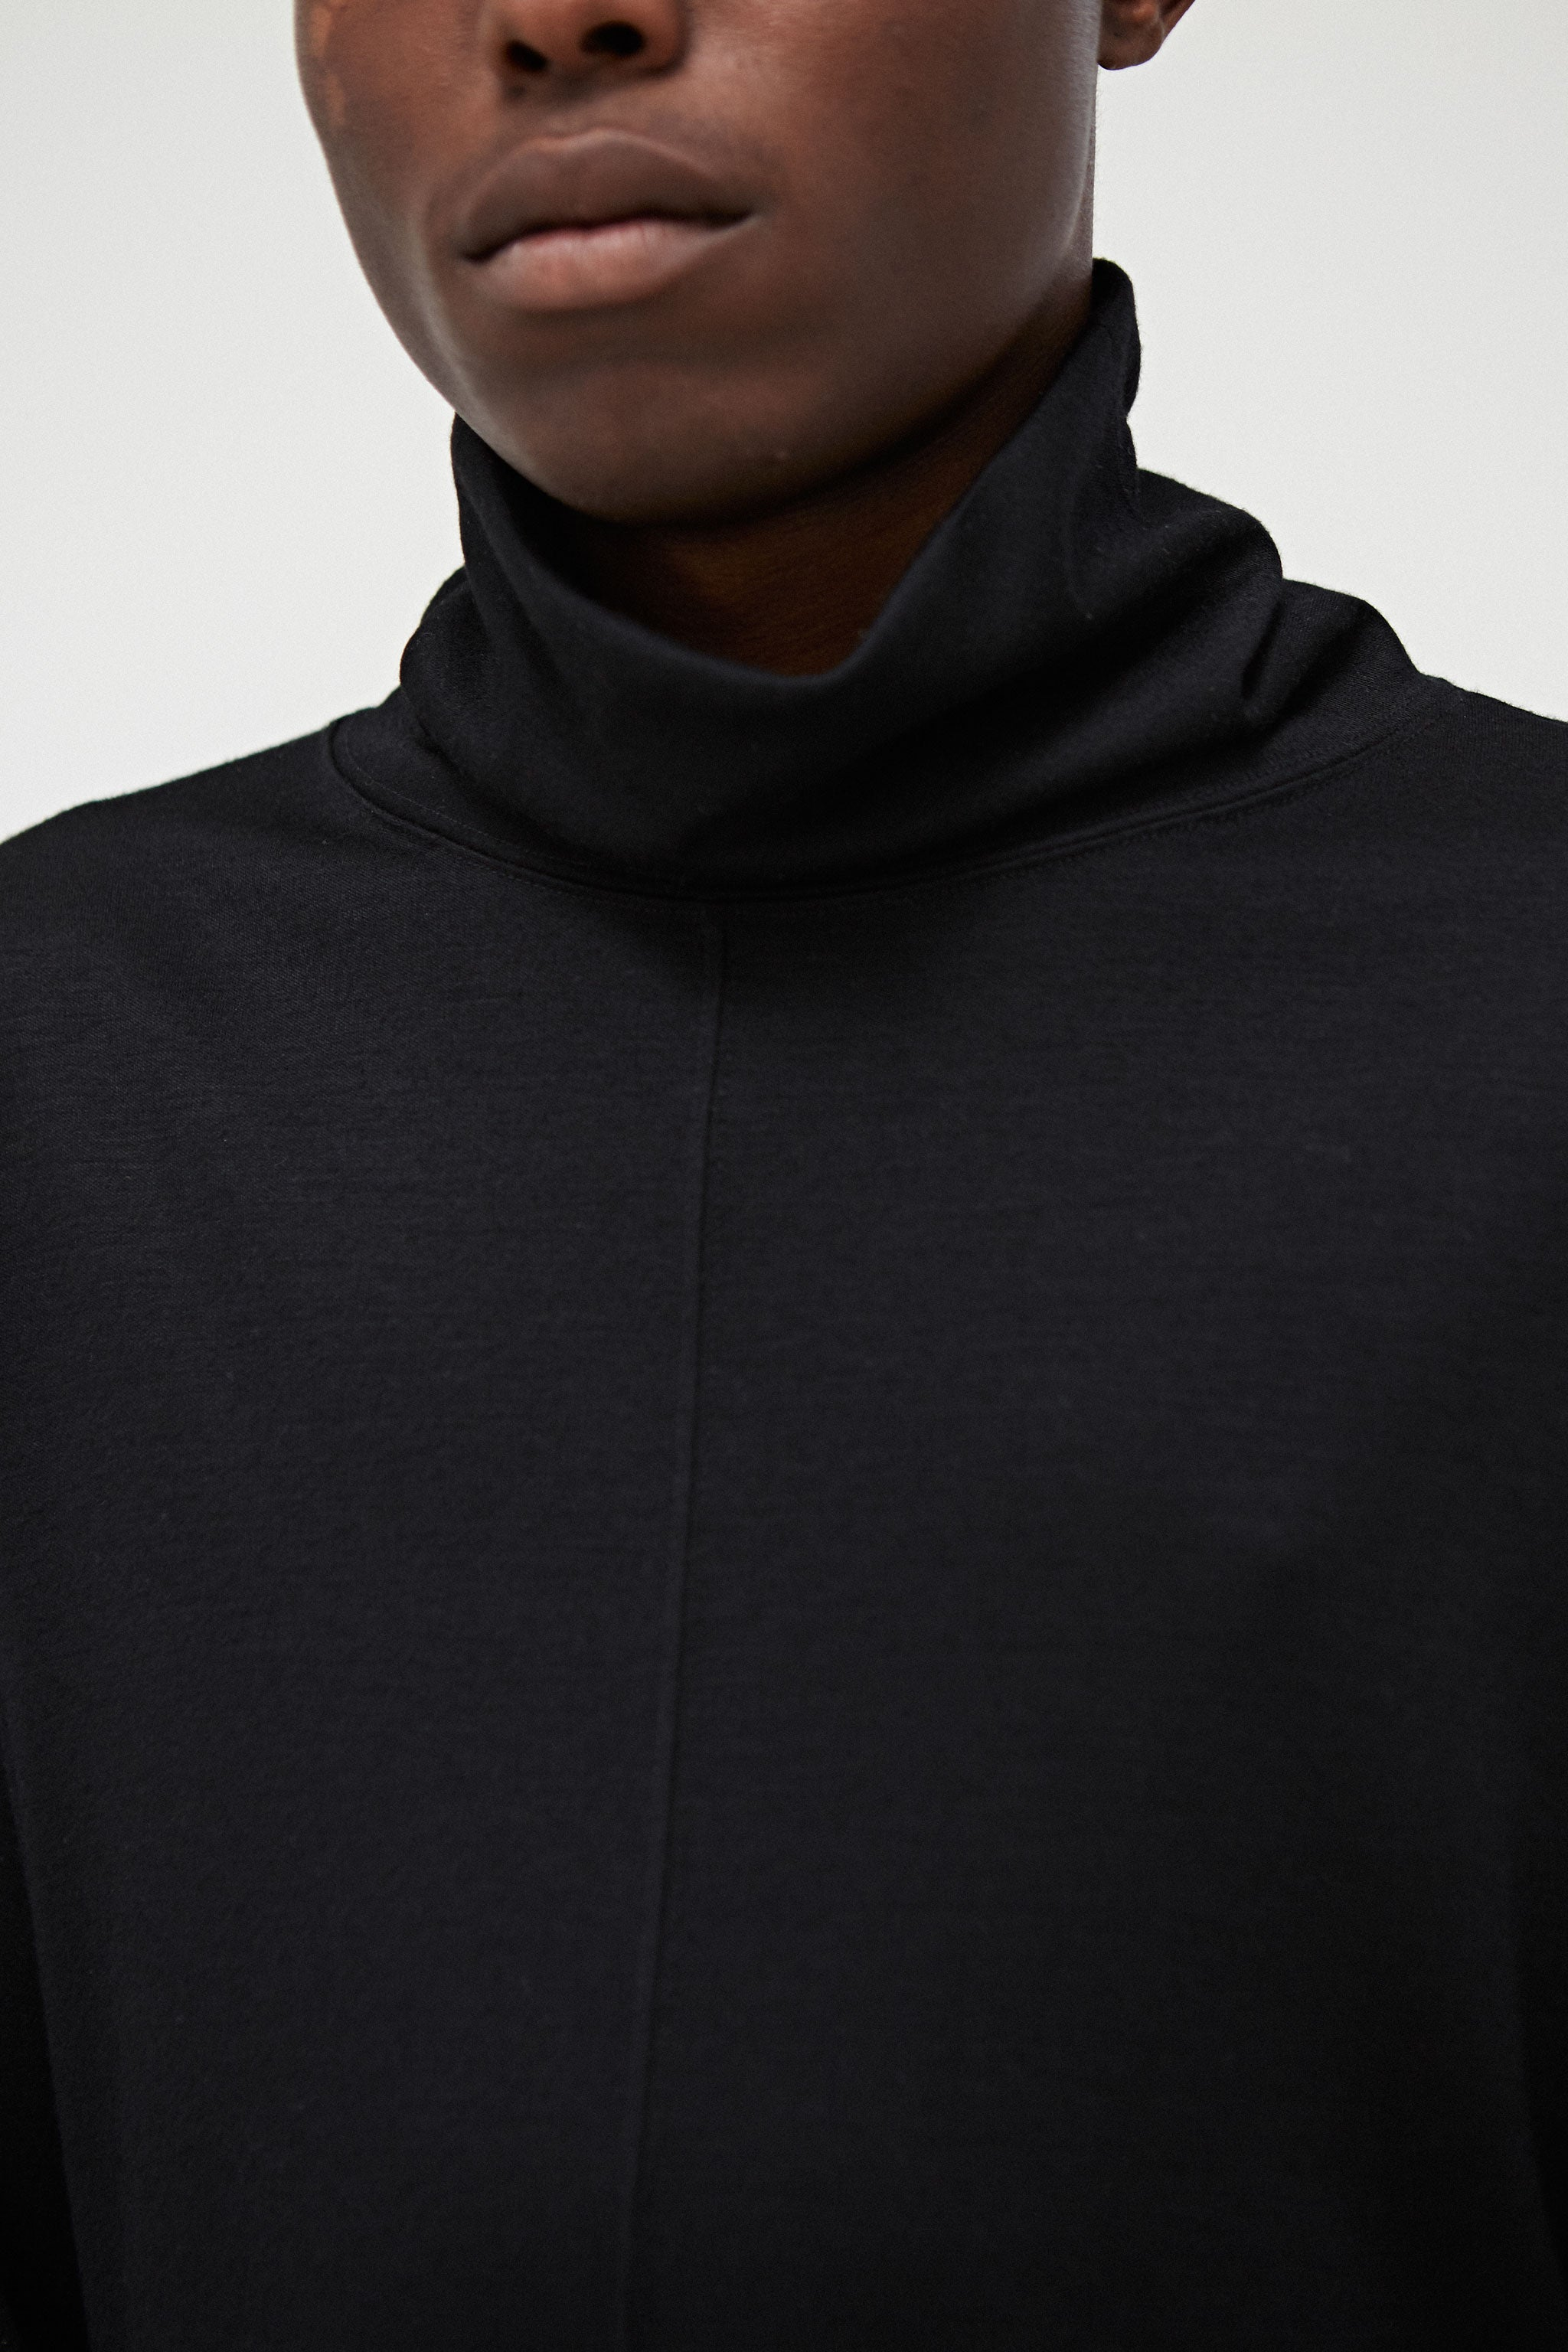 Goodfight FW18 Split Seven L/S Turtleneck Sweater Black